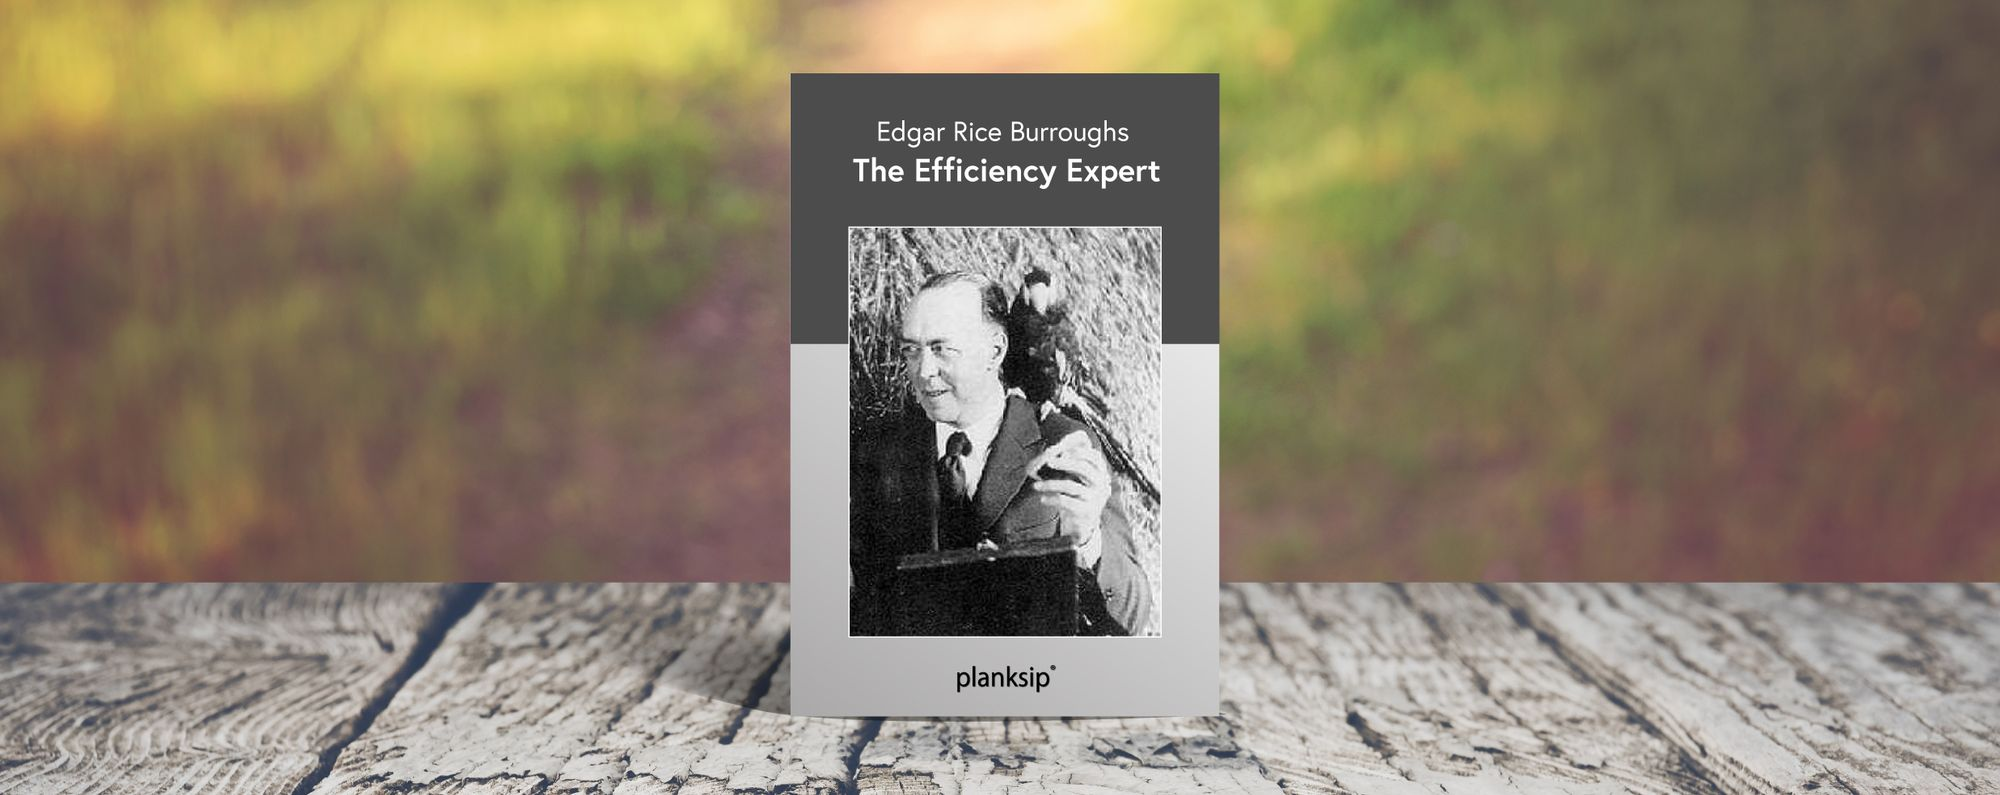 The Efficiency Expert by Edgar Rice Burroughs (1875-1950). Published by planksip